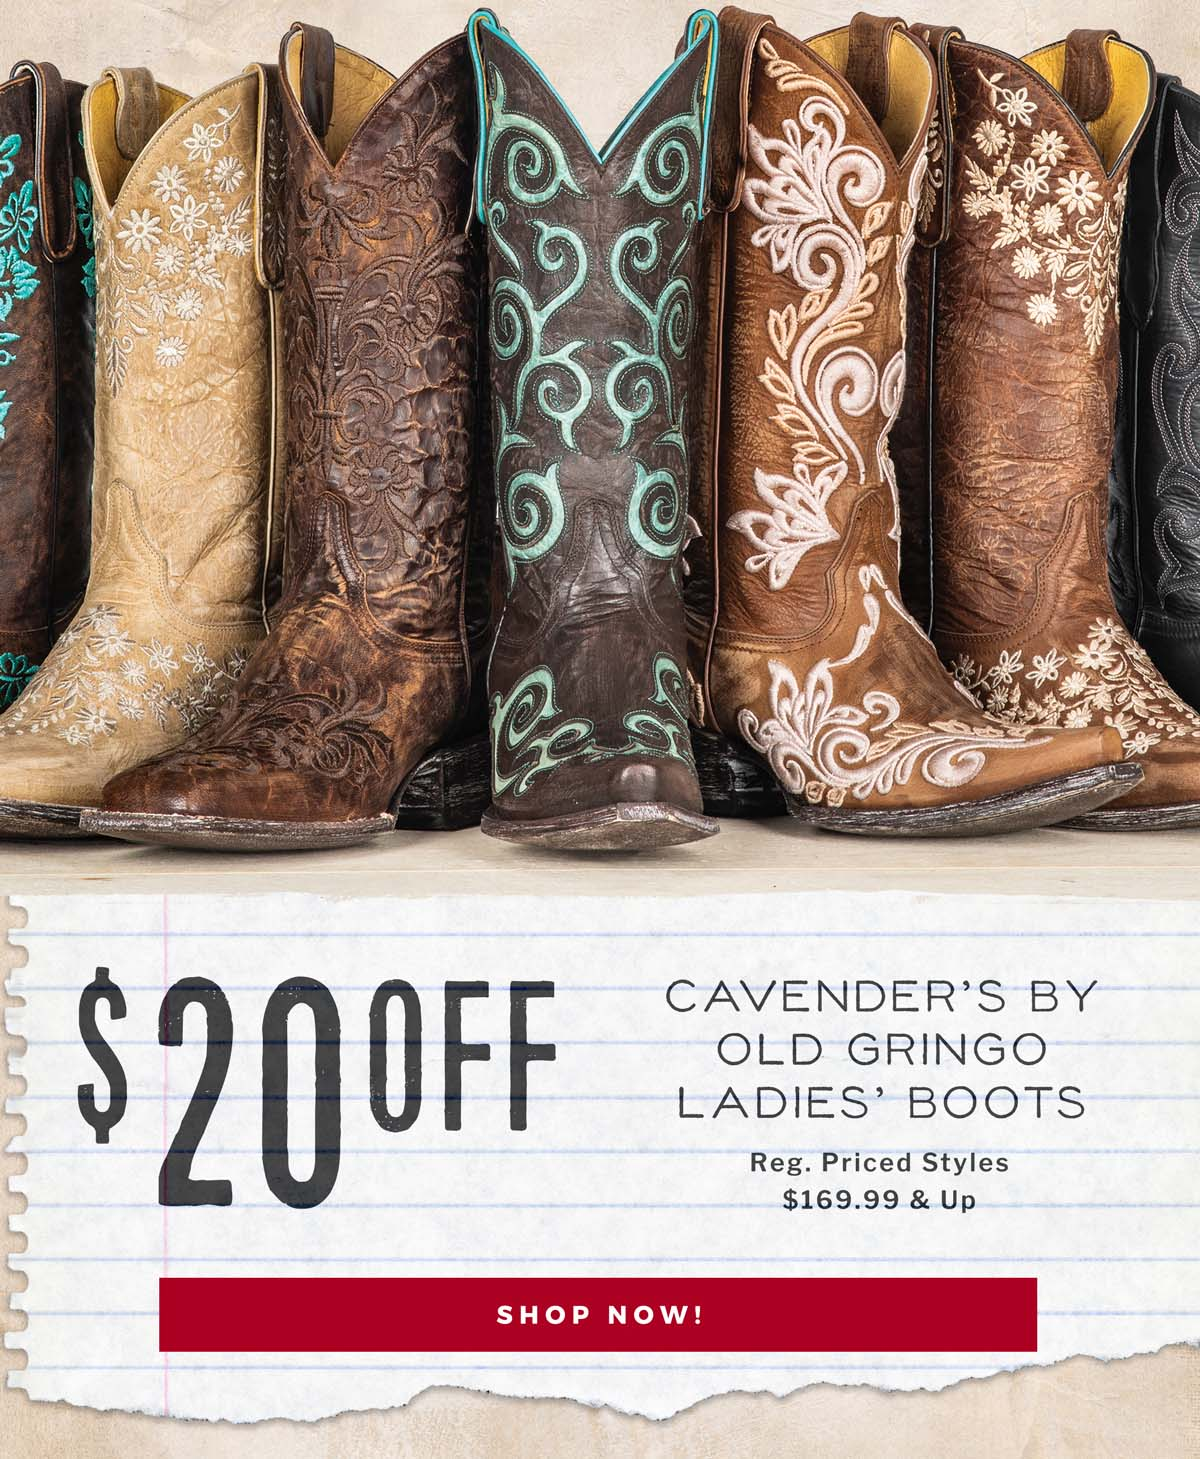 Boots Designed by the Cavender Family